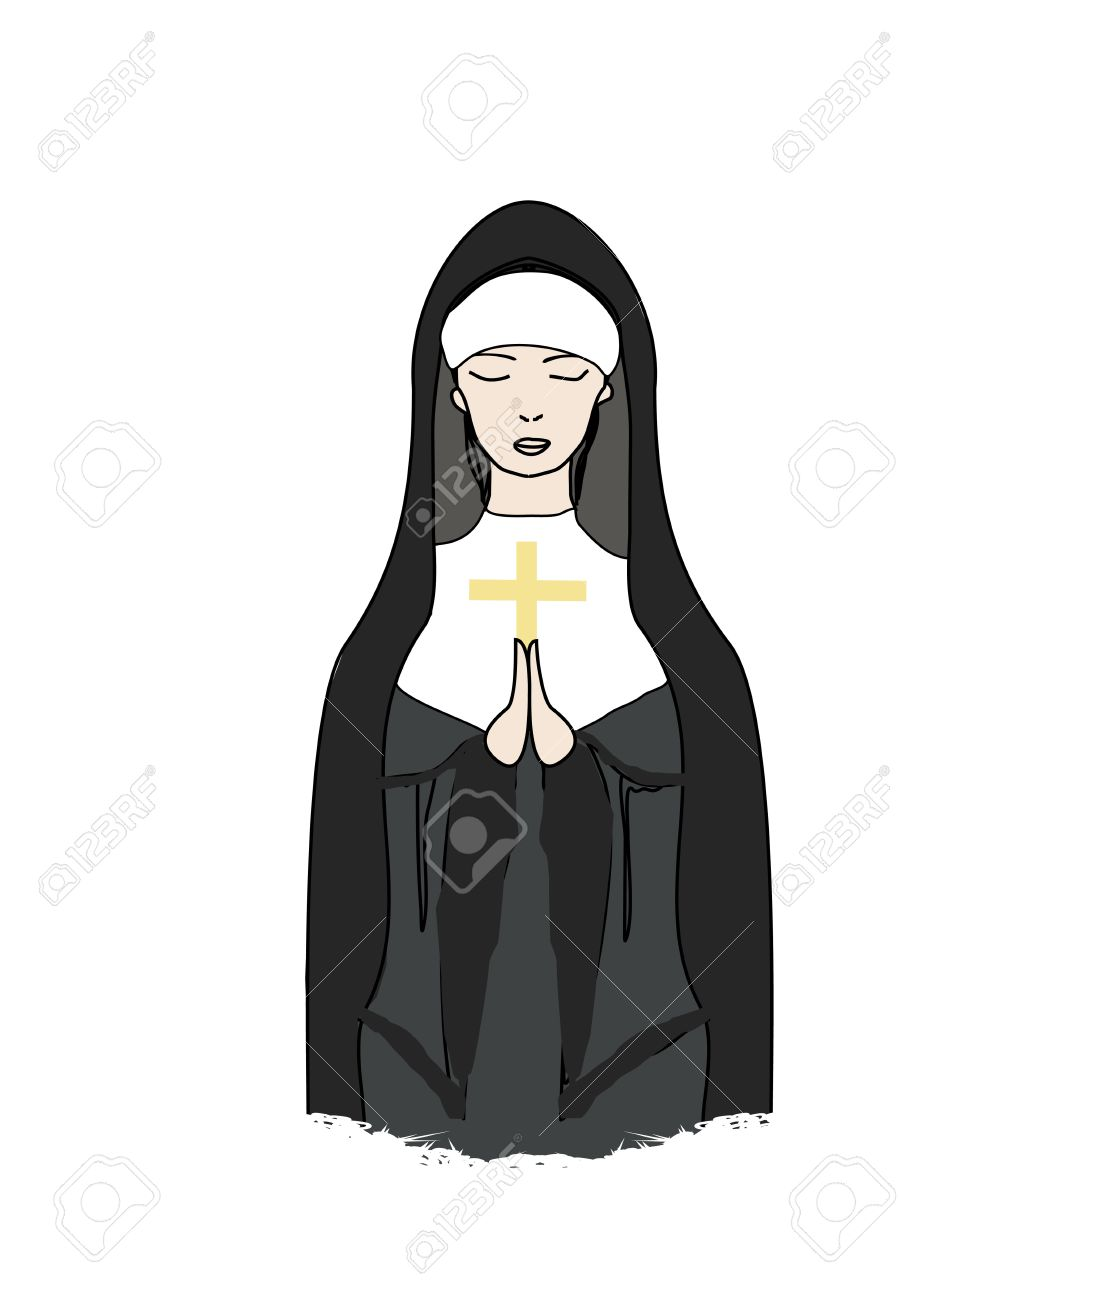 Nun clipart #6, Download drawings